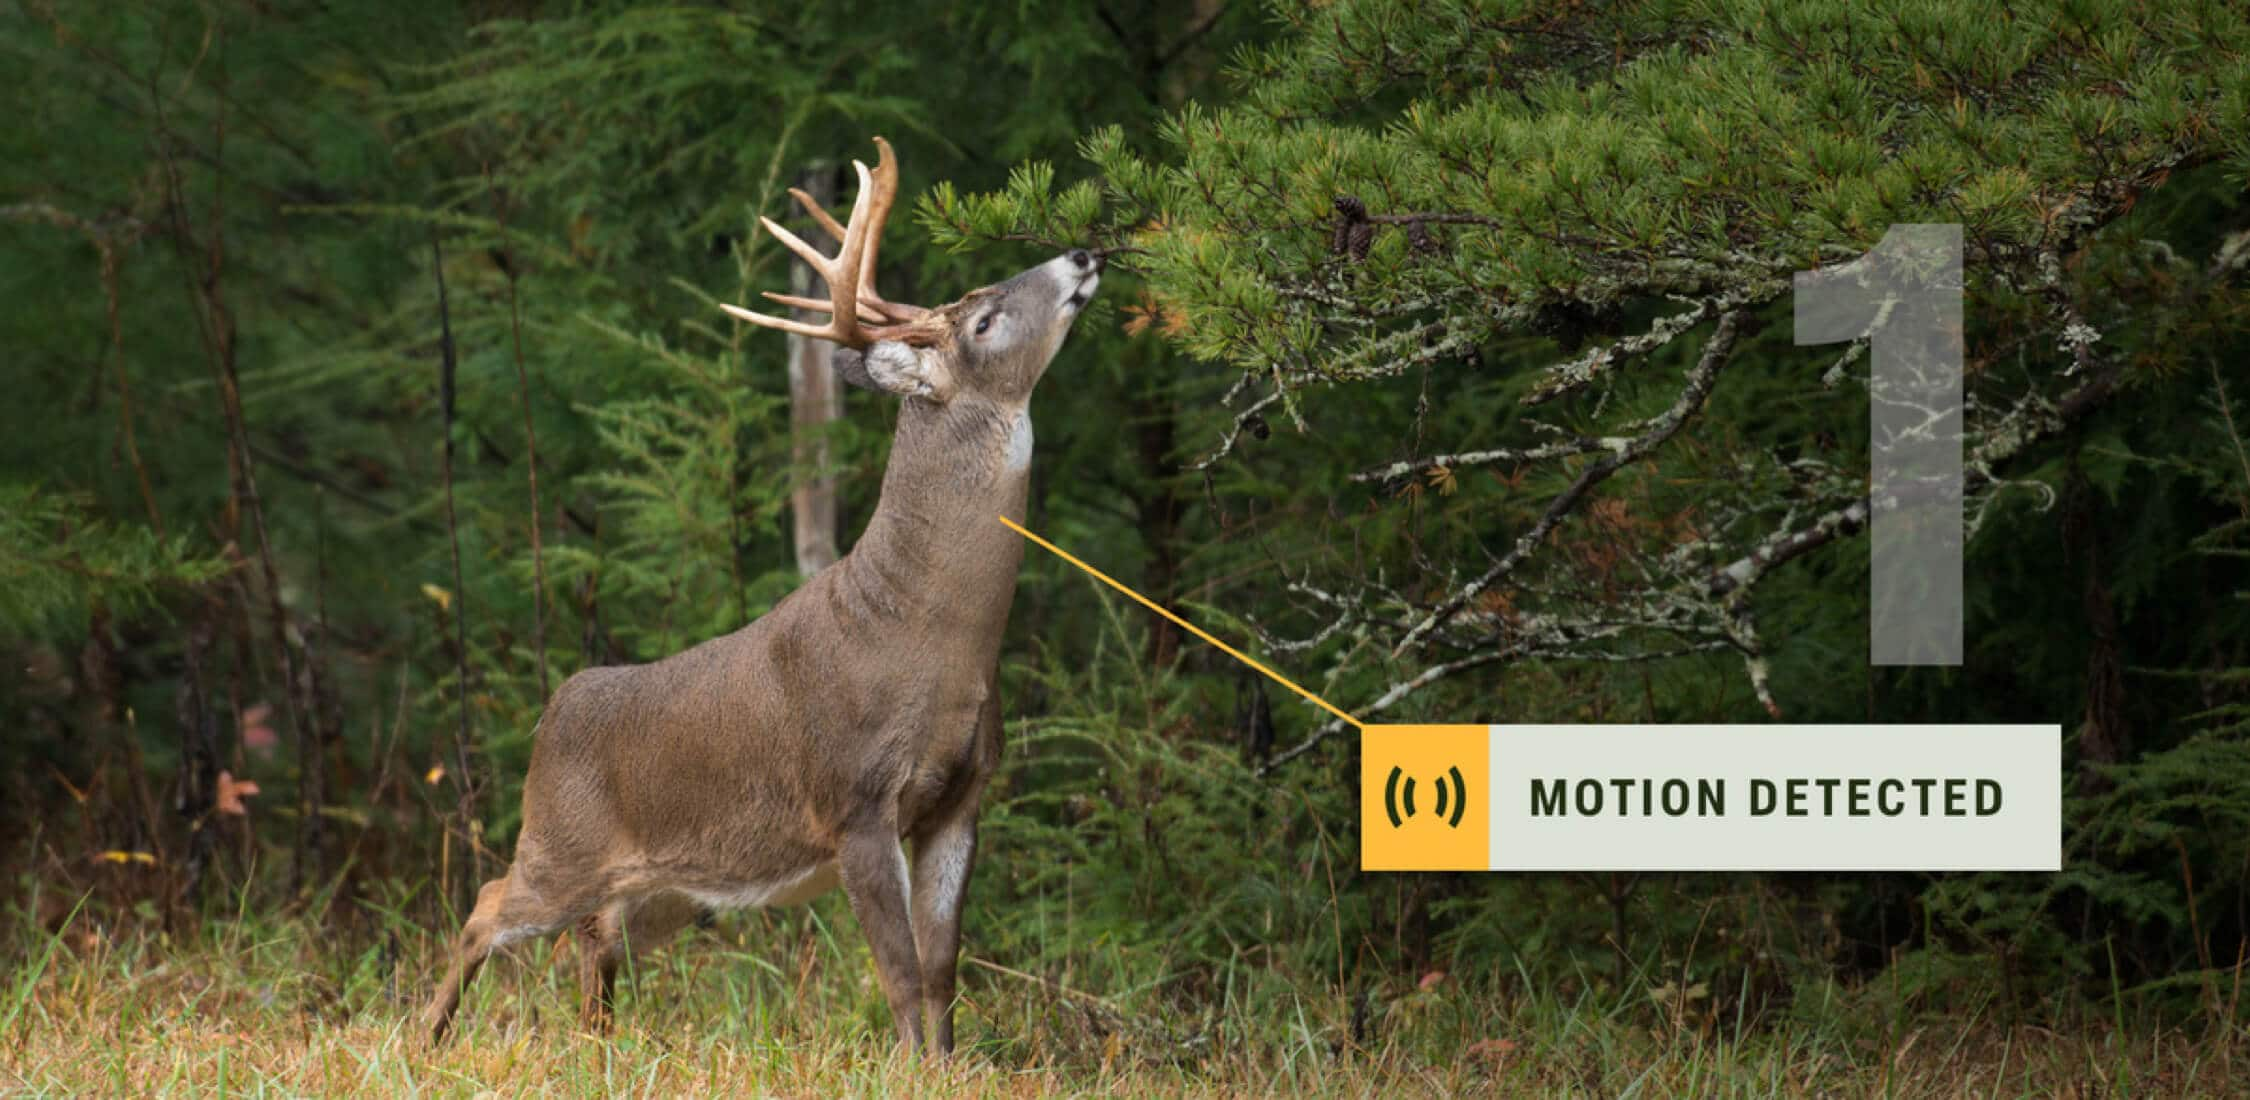 Motion detected of deer moving near camera